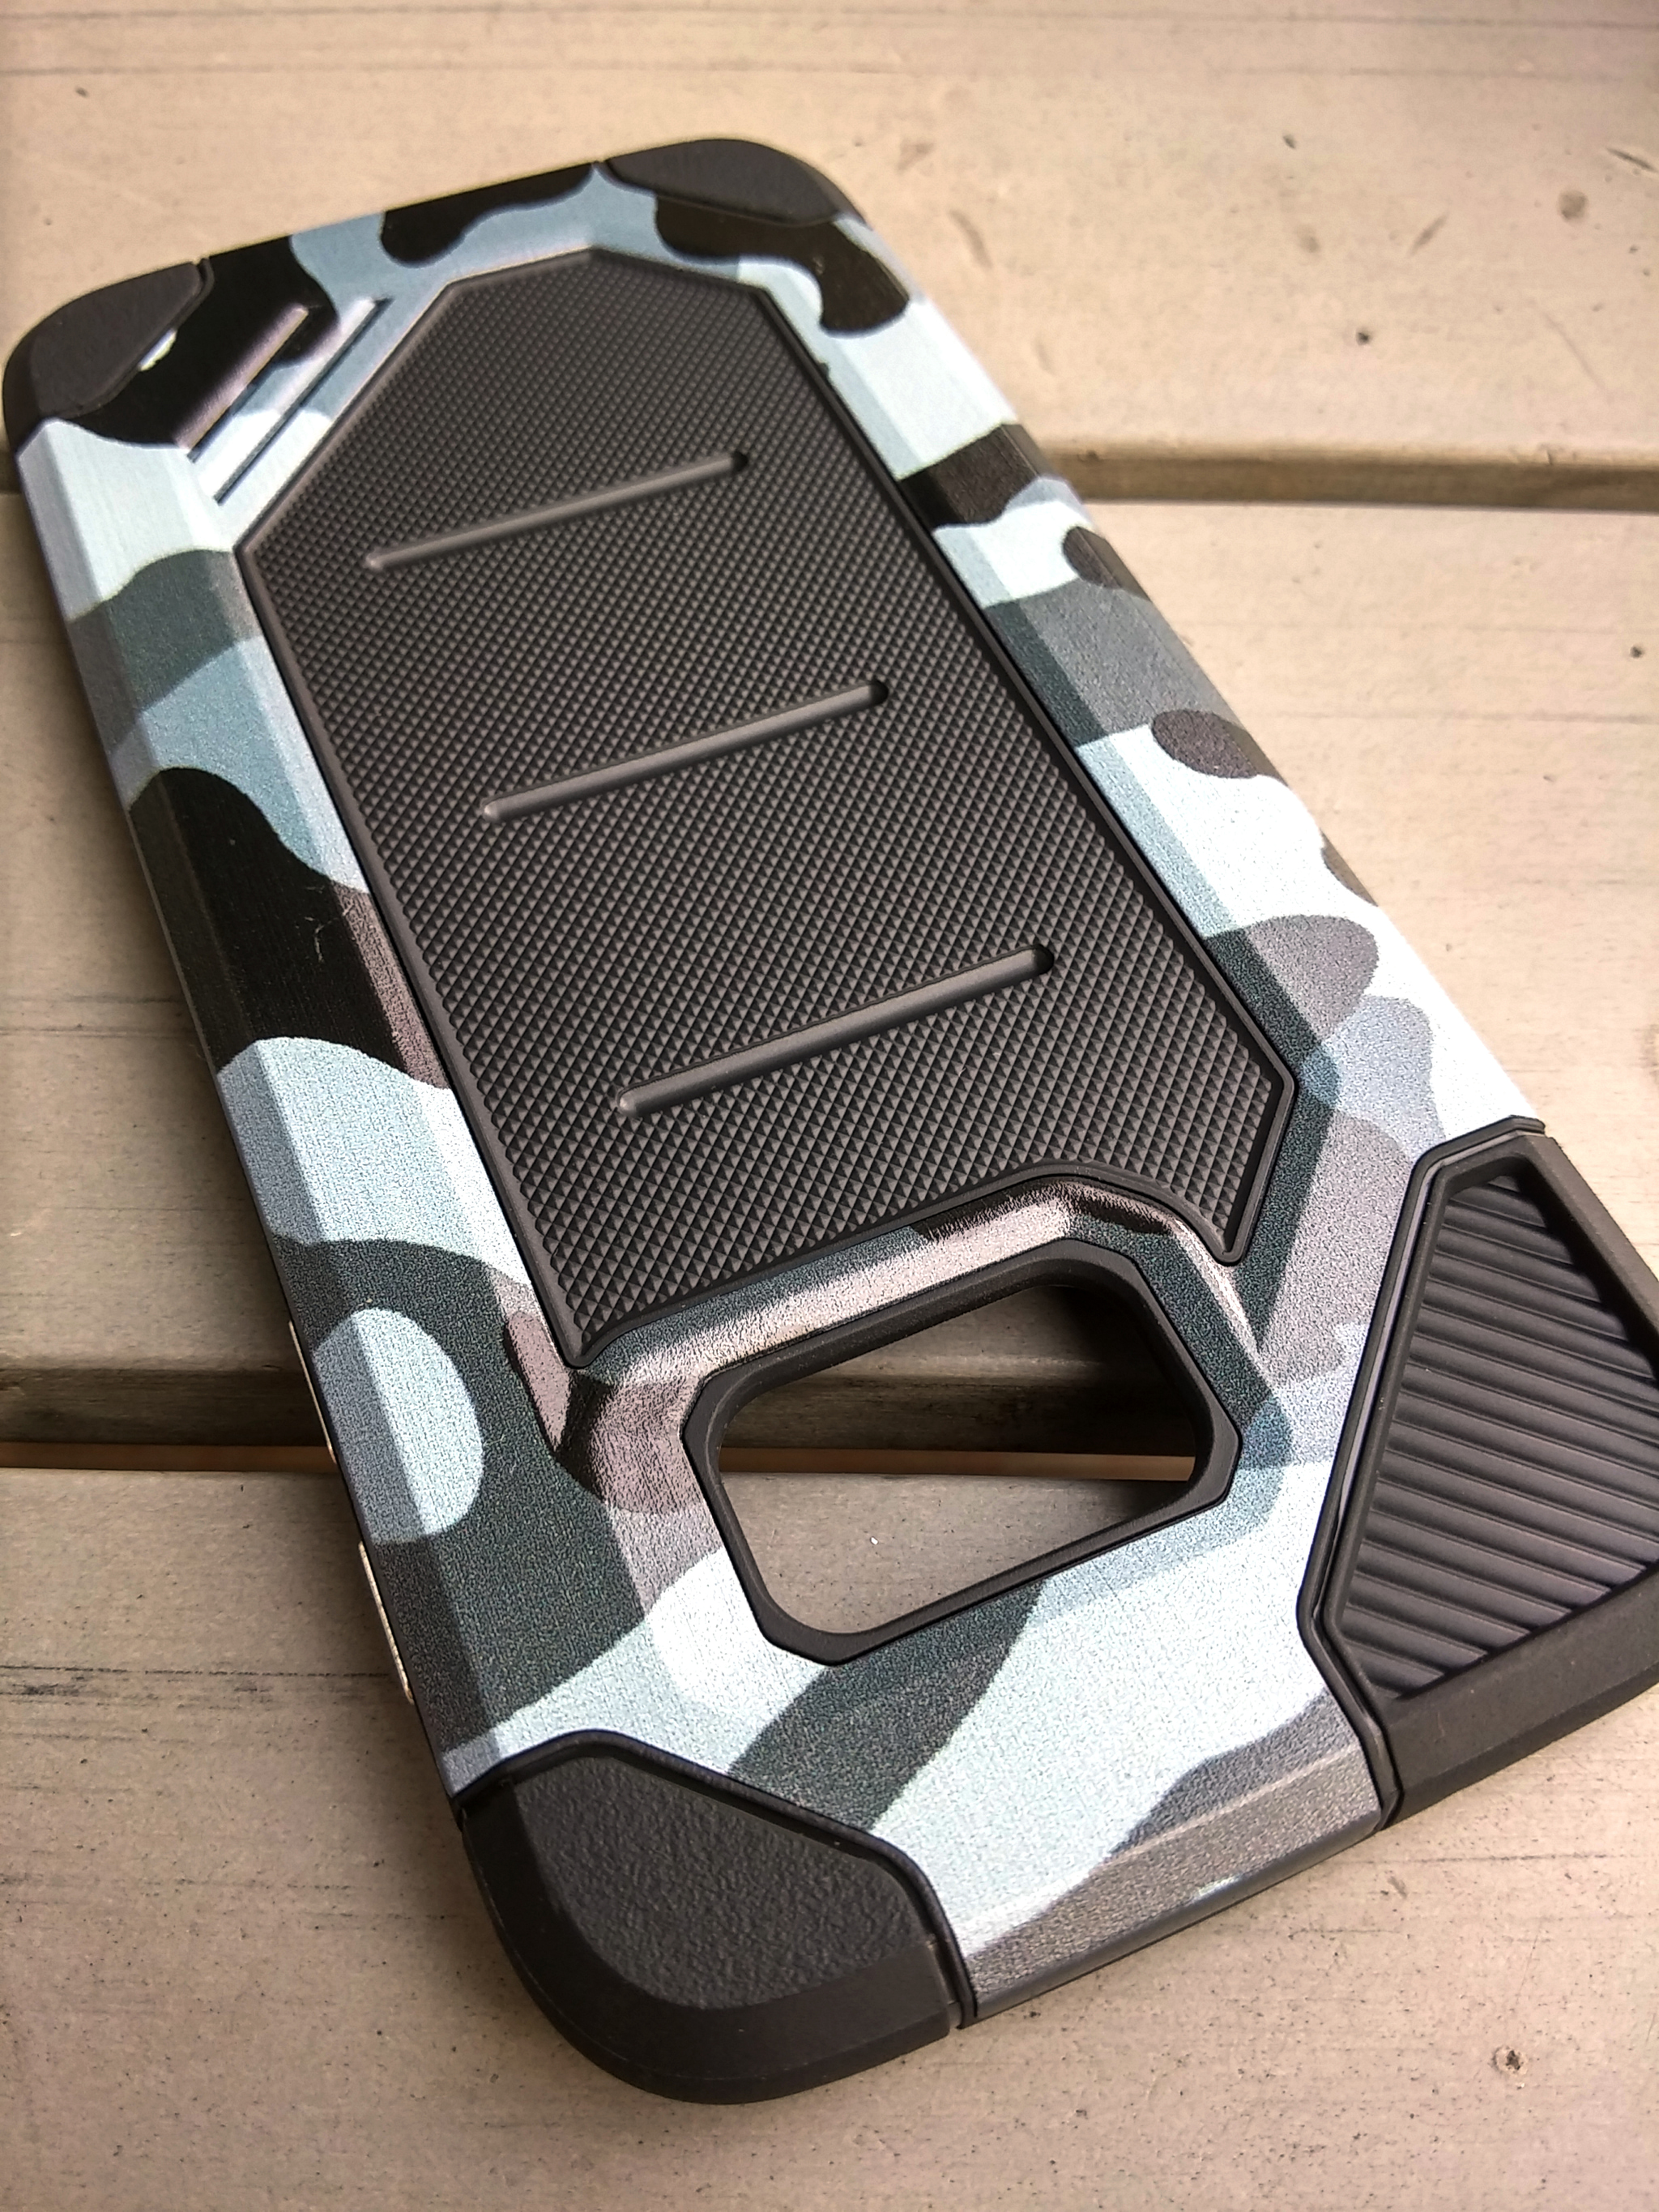 Samsung S7 Flat Army Military Sport Tech Armor Soft Case Shockproof